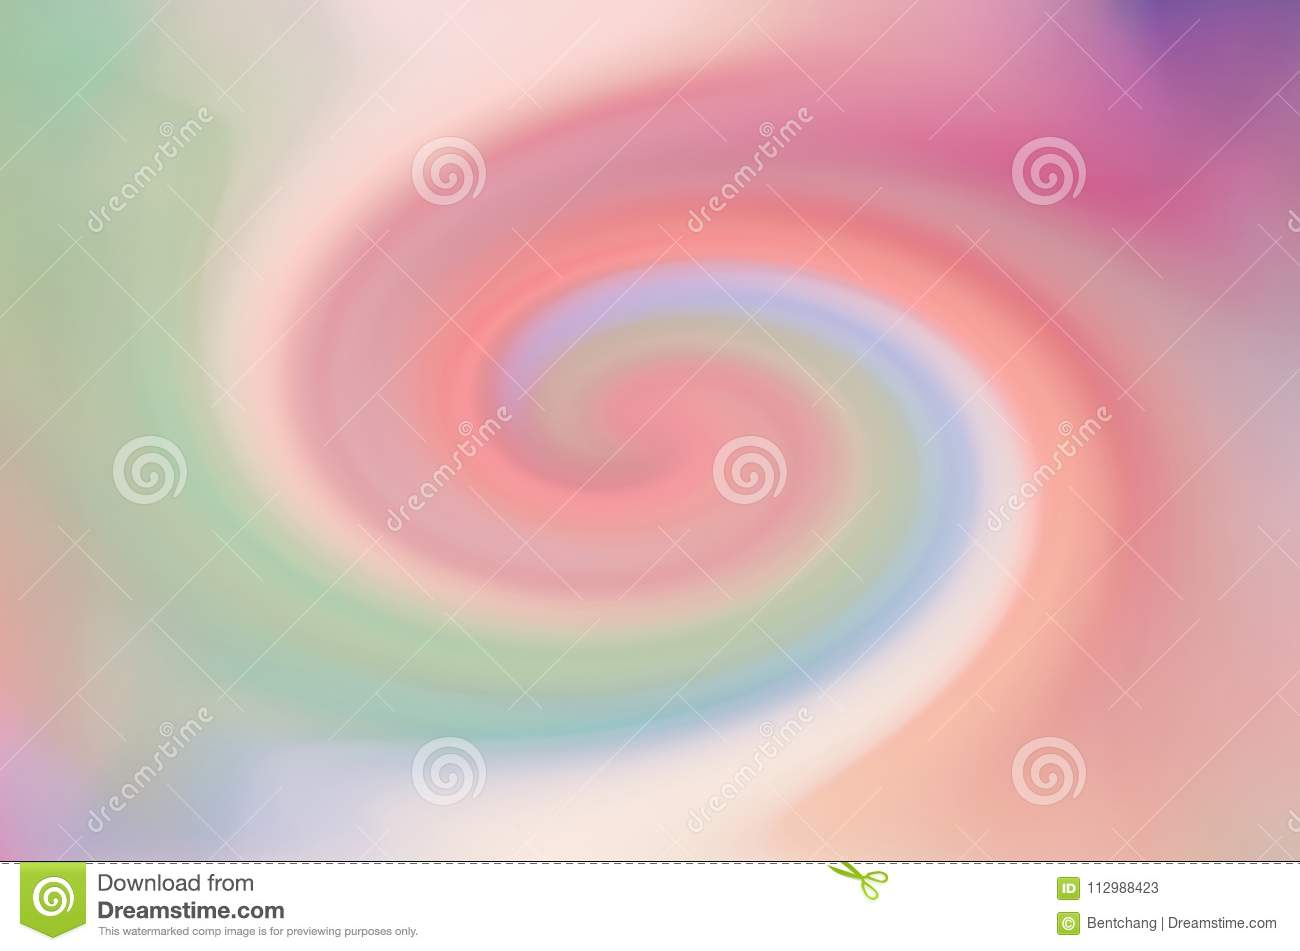 Abstract background or texture for design, blur motion. Nature, imagination, red & close-up.